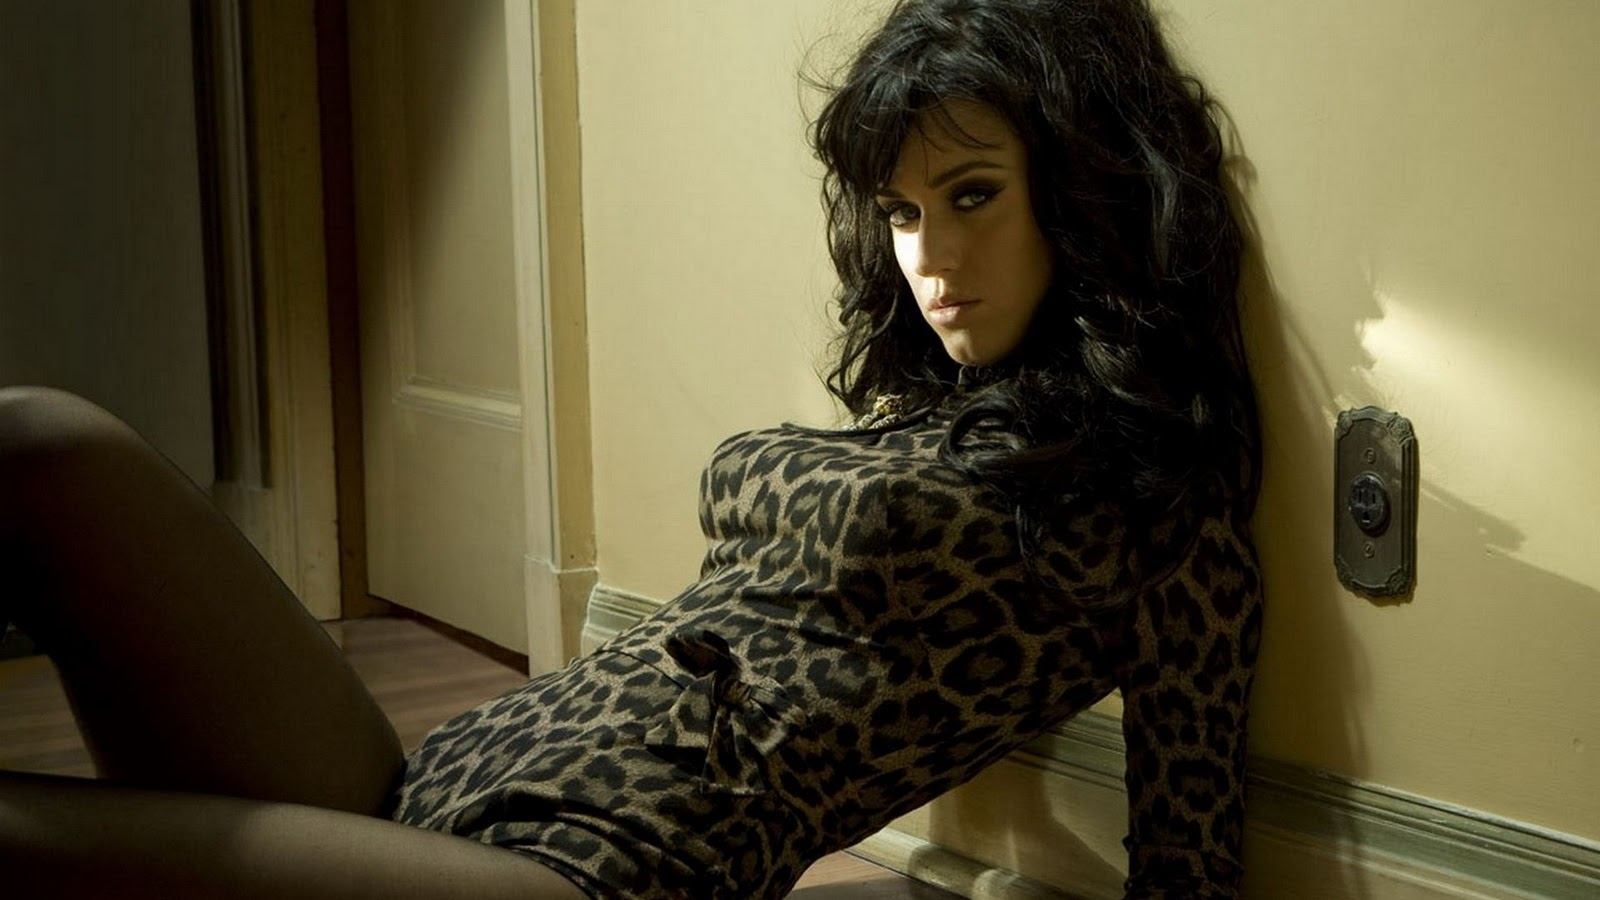 Katy Perry Latest HD Wallpapers - Celebrities HD Wallpapers